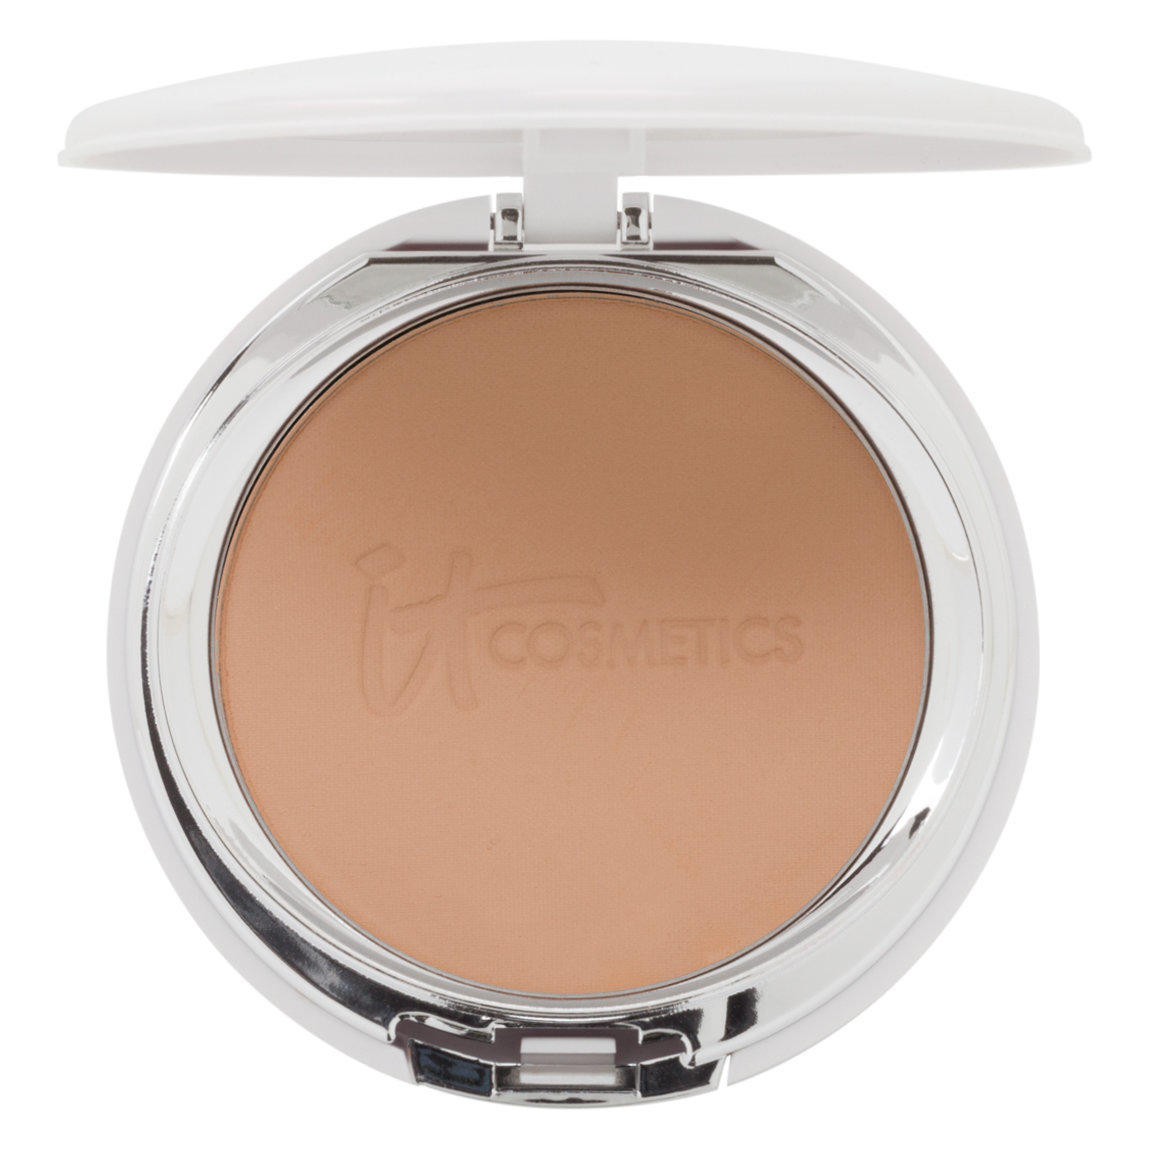 IT Cosmetics Celebration Foundation Illumination Medium Tan